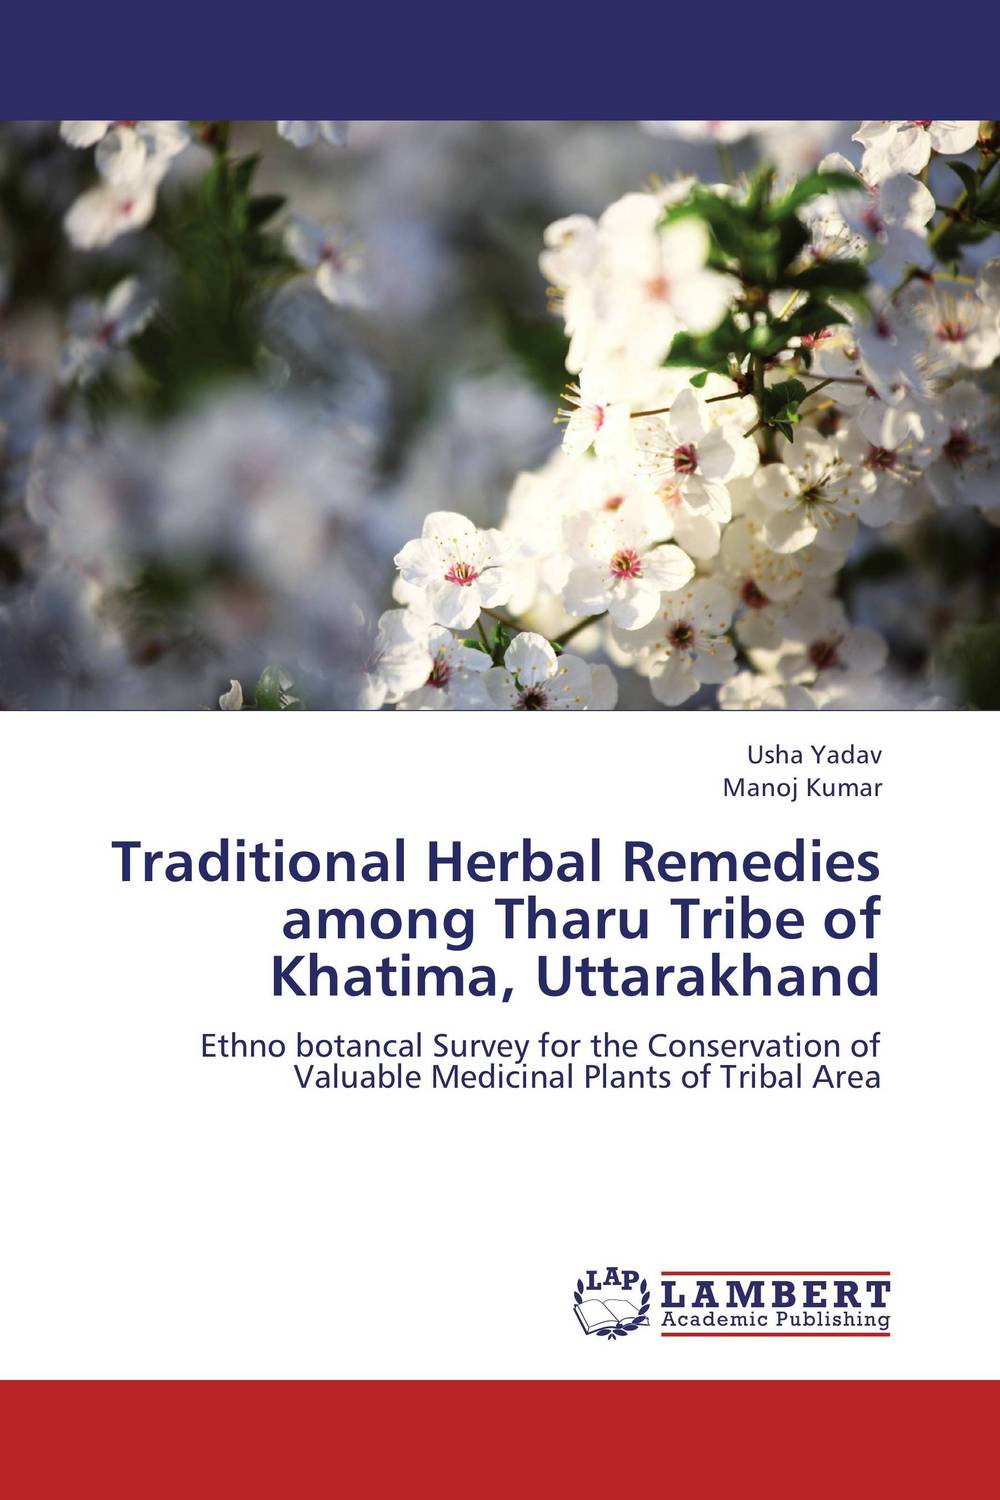 Traditional Herbal Remedies among Tharu Tribe of Khatima, Uttarakhand naturalcure cure prostatitis caps ules cure prostate diseases relieve prostate pain and help solve urination problems